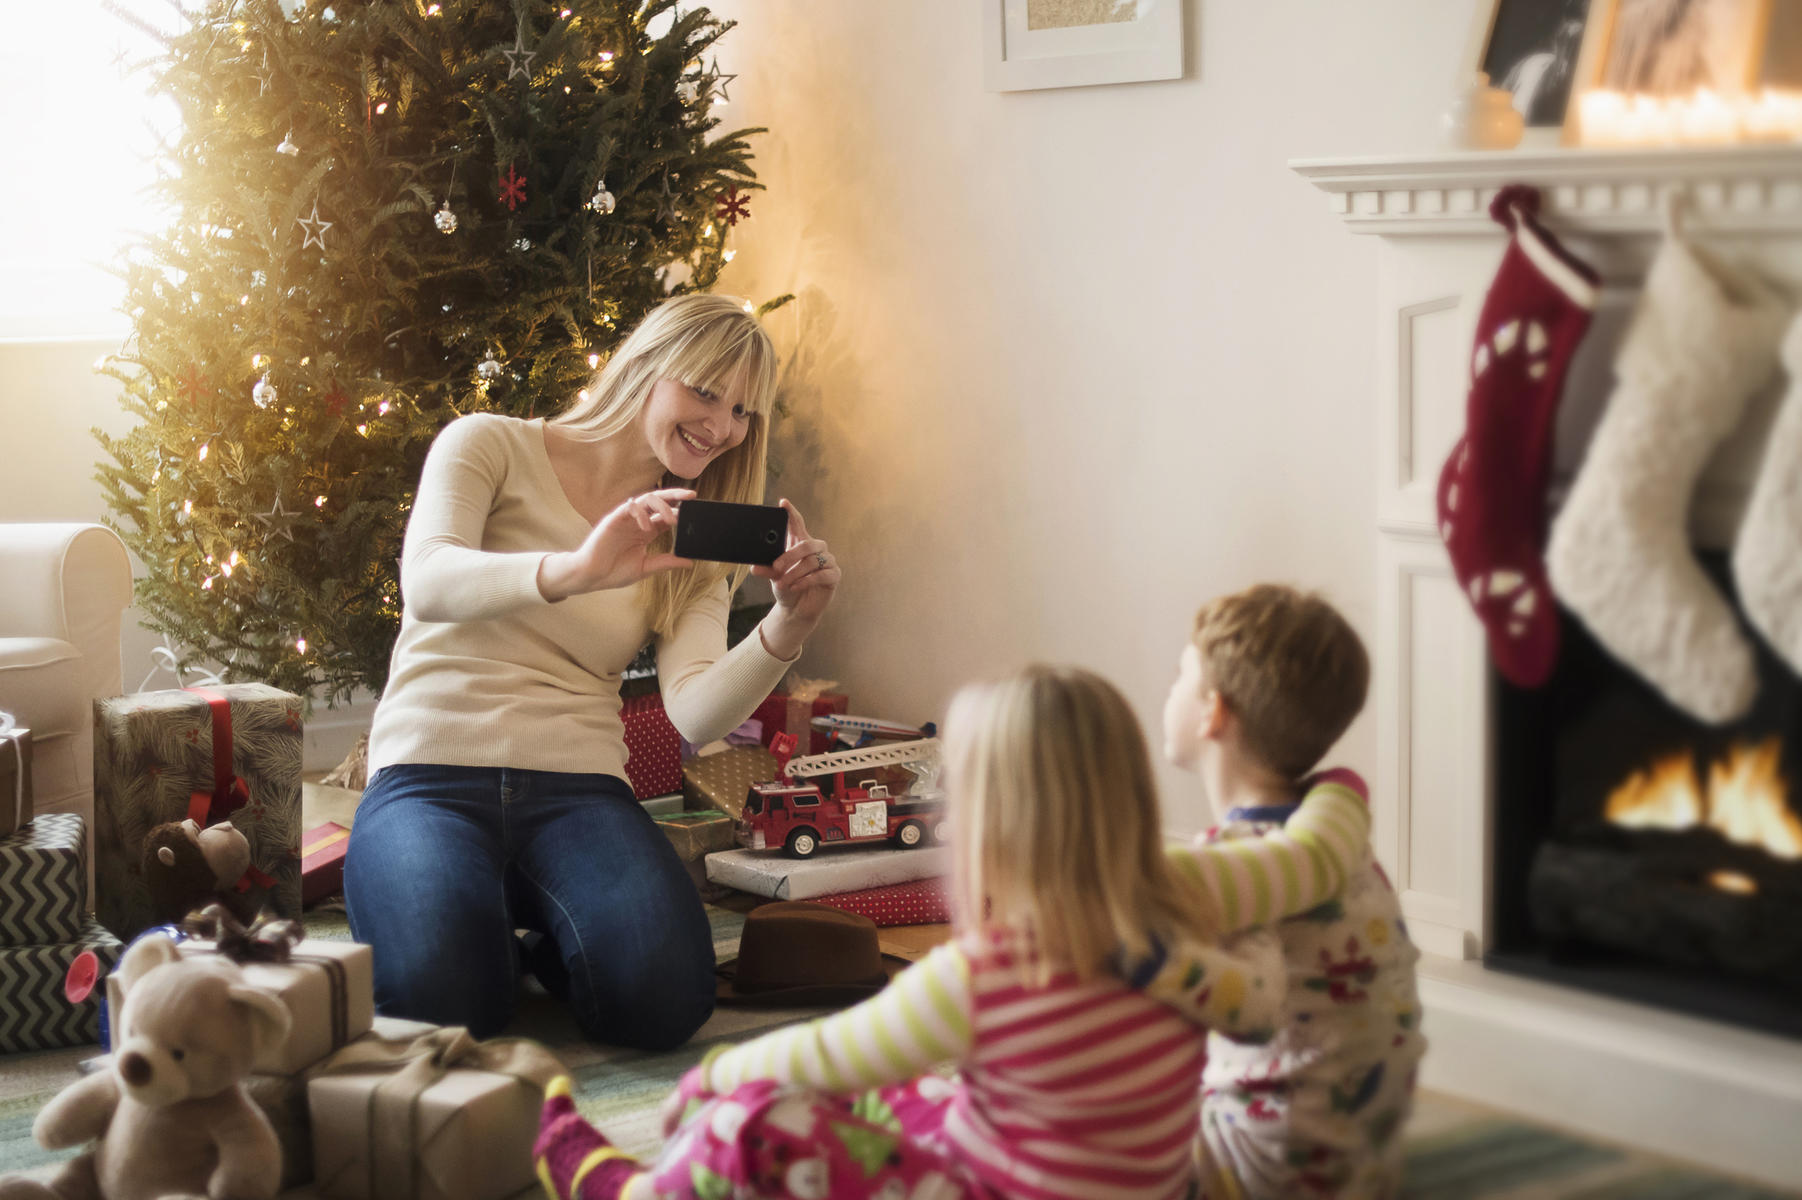 Mother with children opening Christmas presents and taking photos